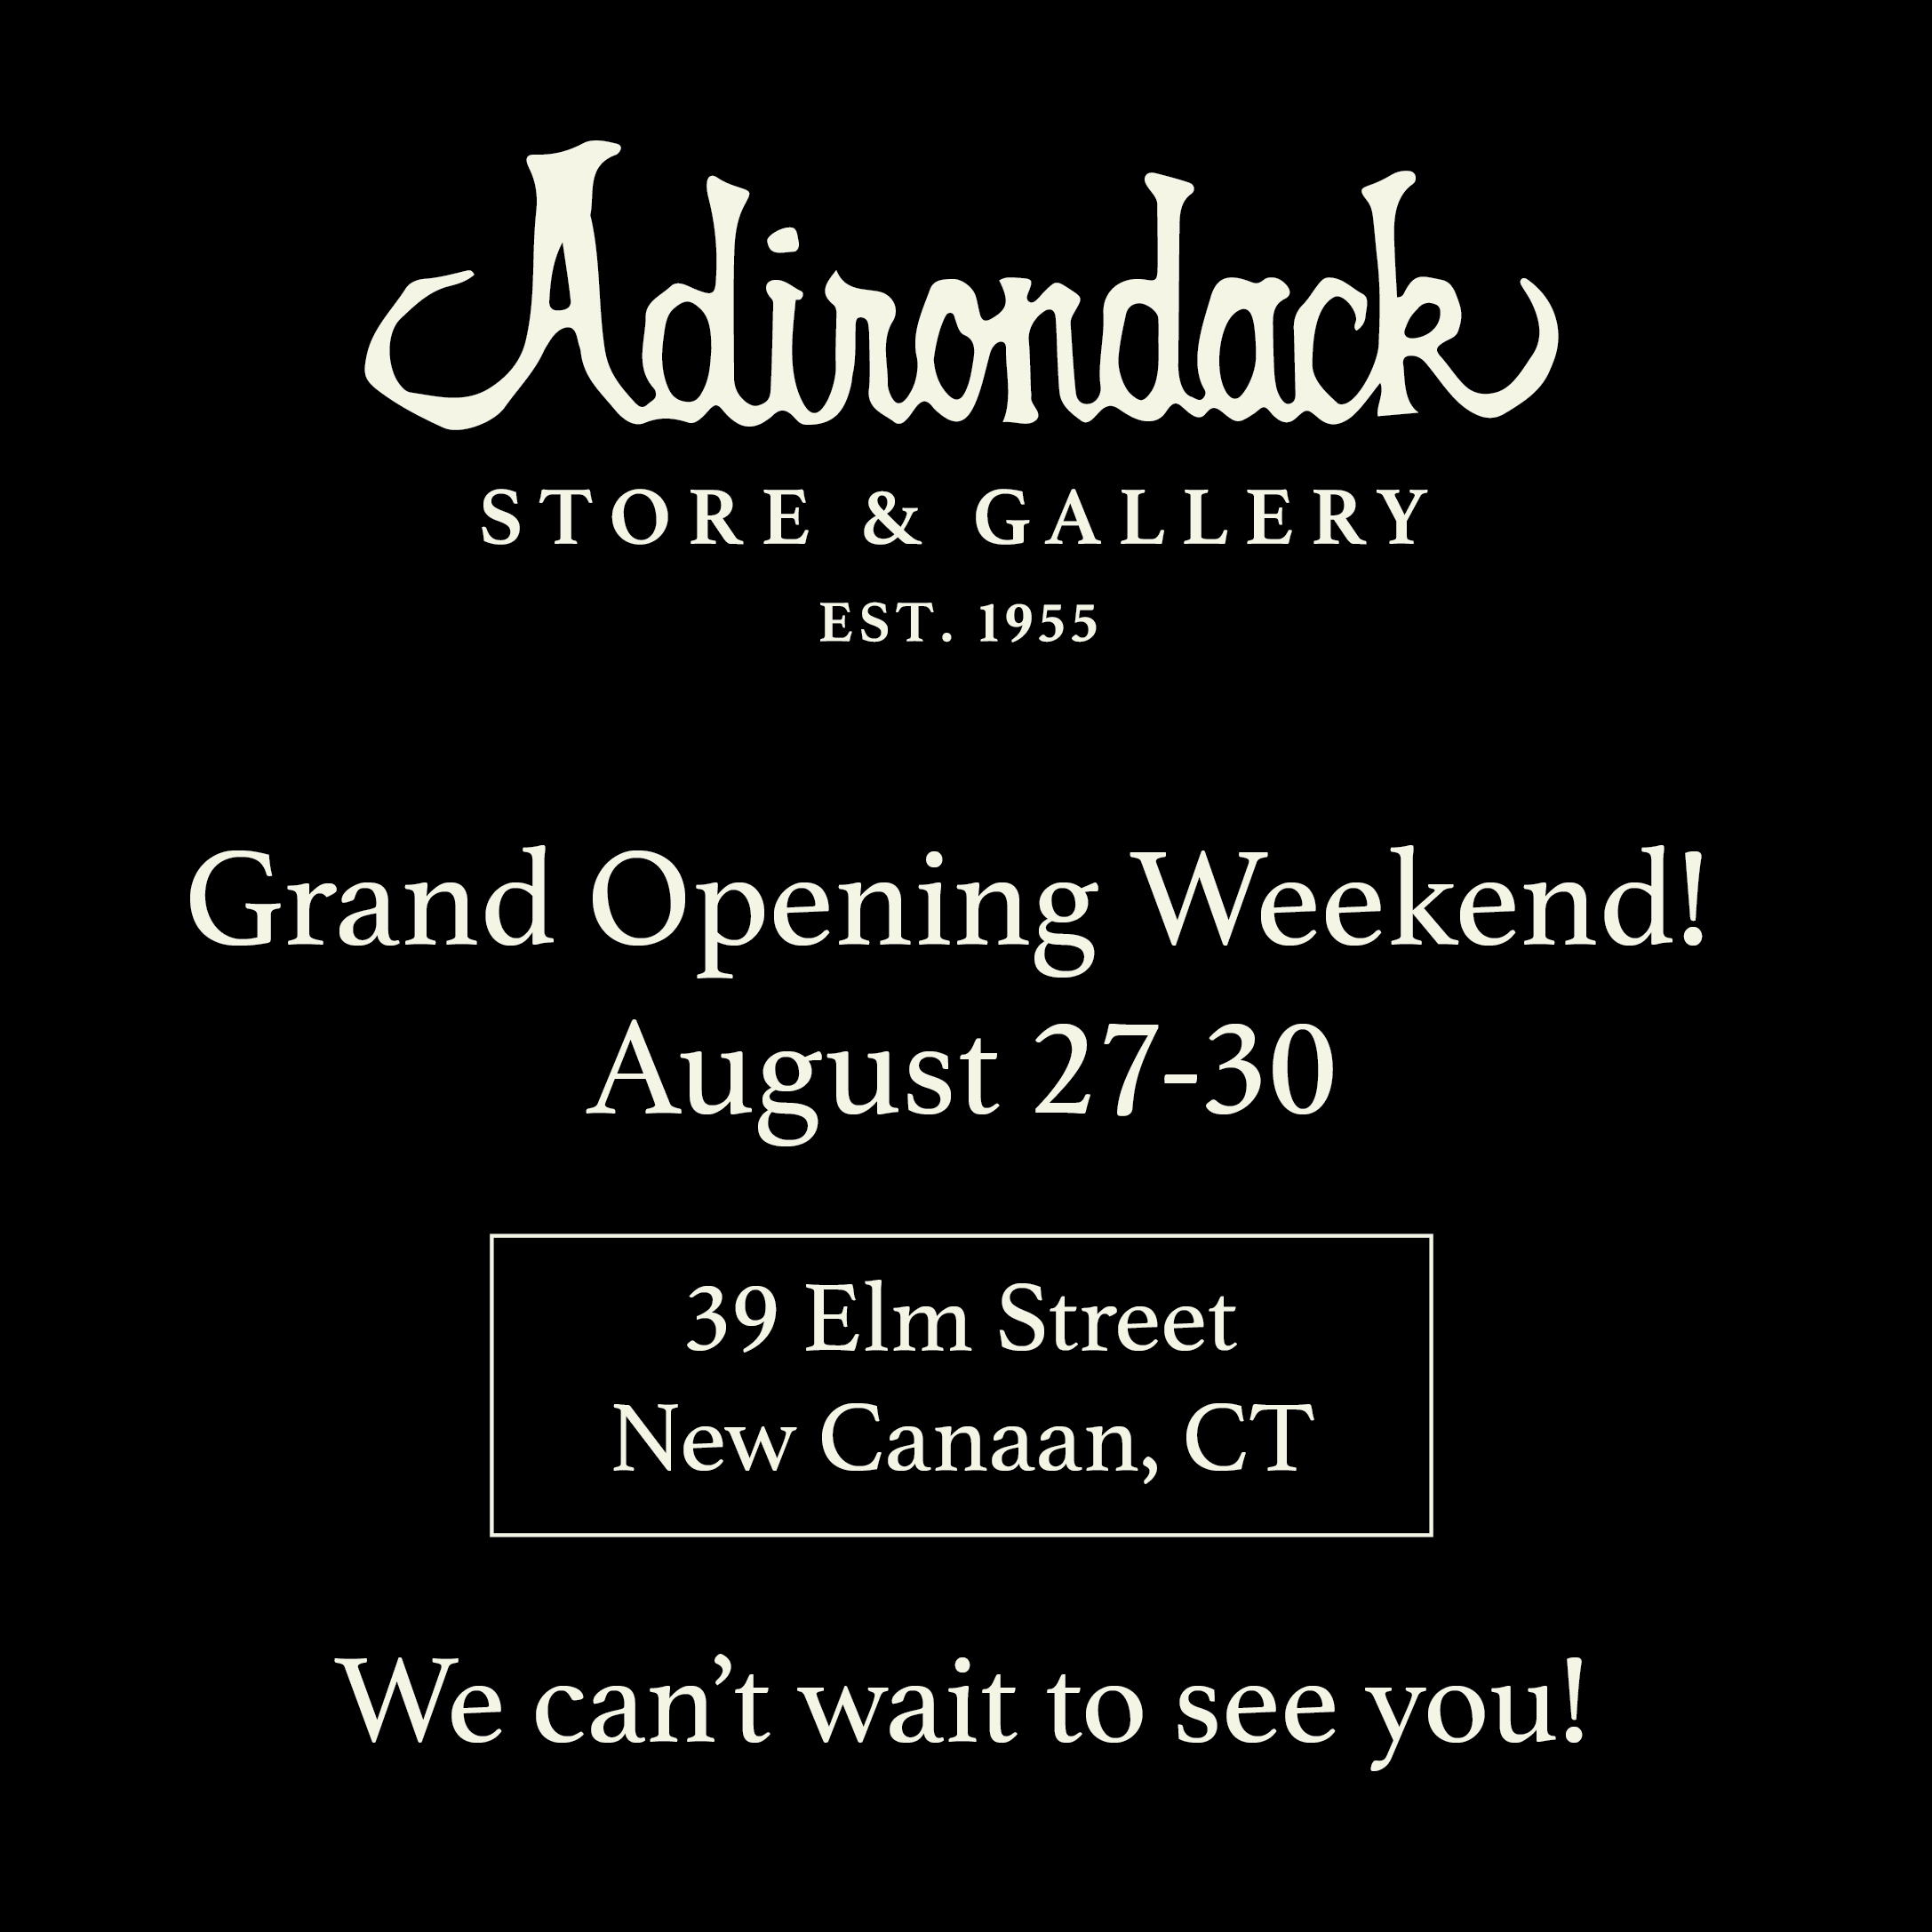 adk store ct opening ig R2YCSs.tmp